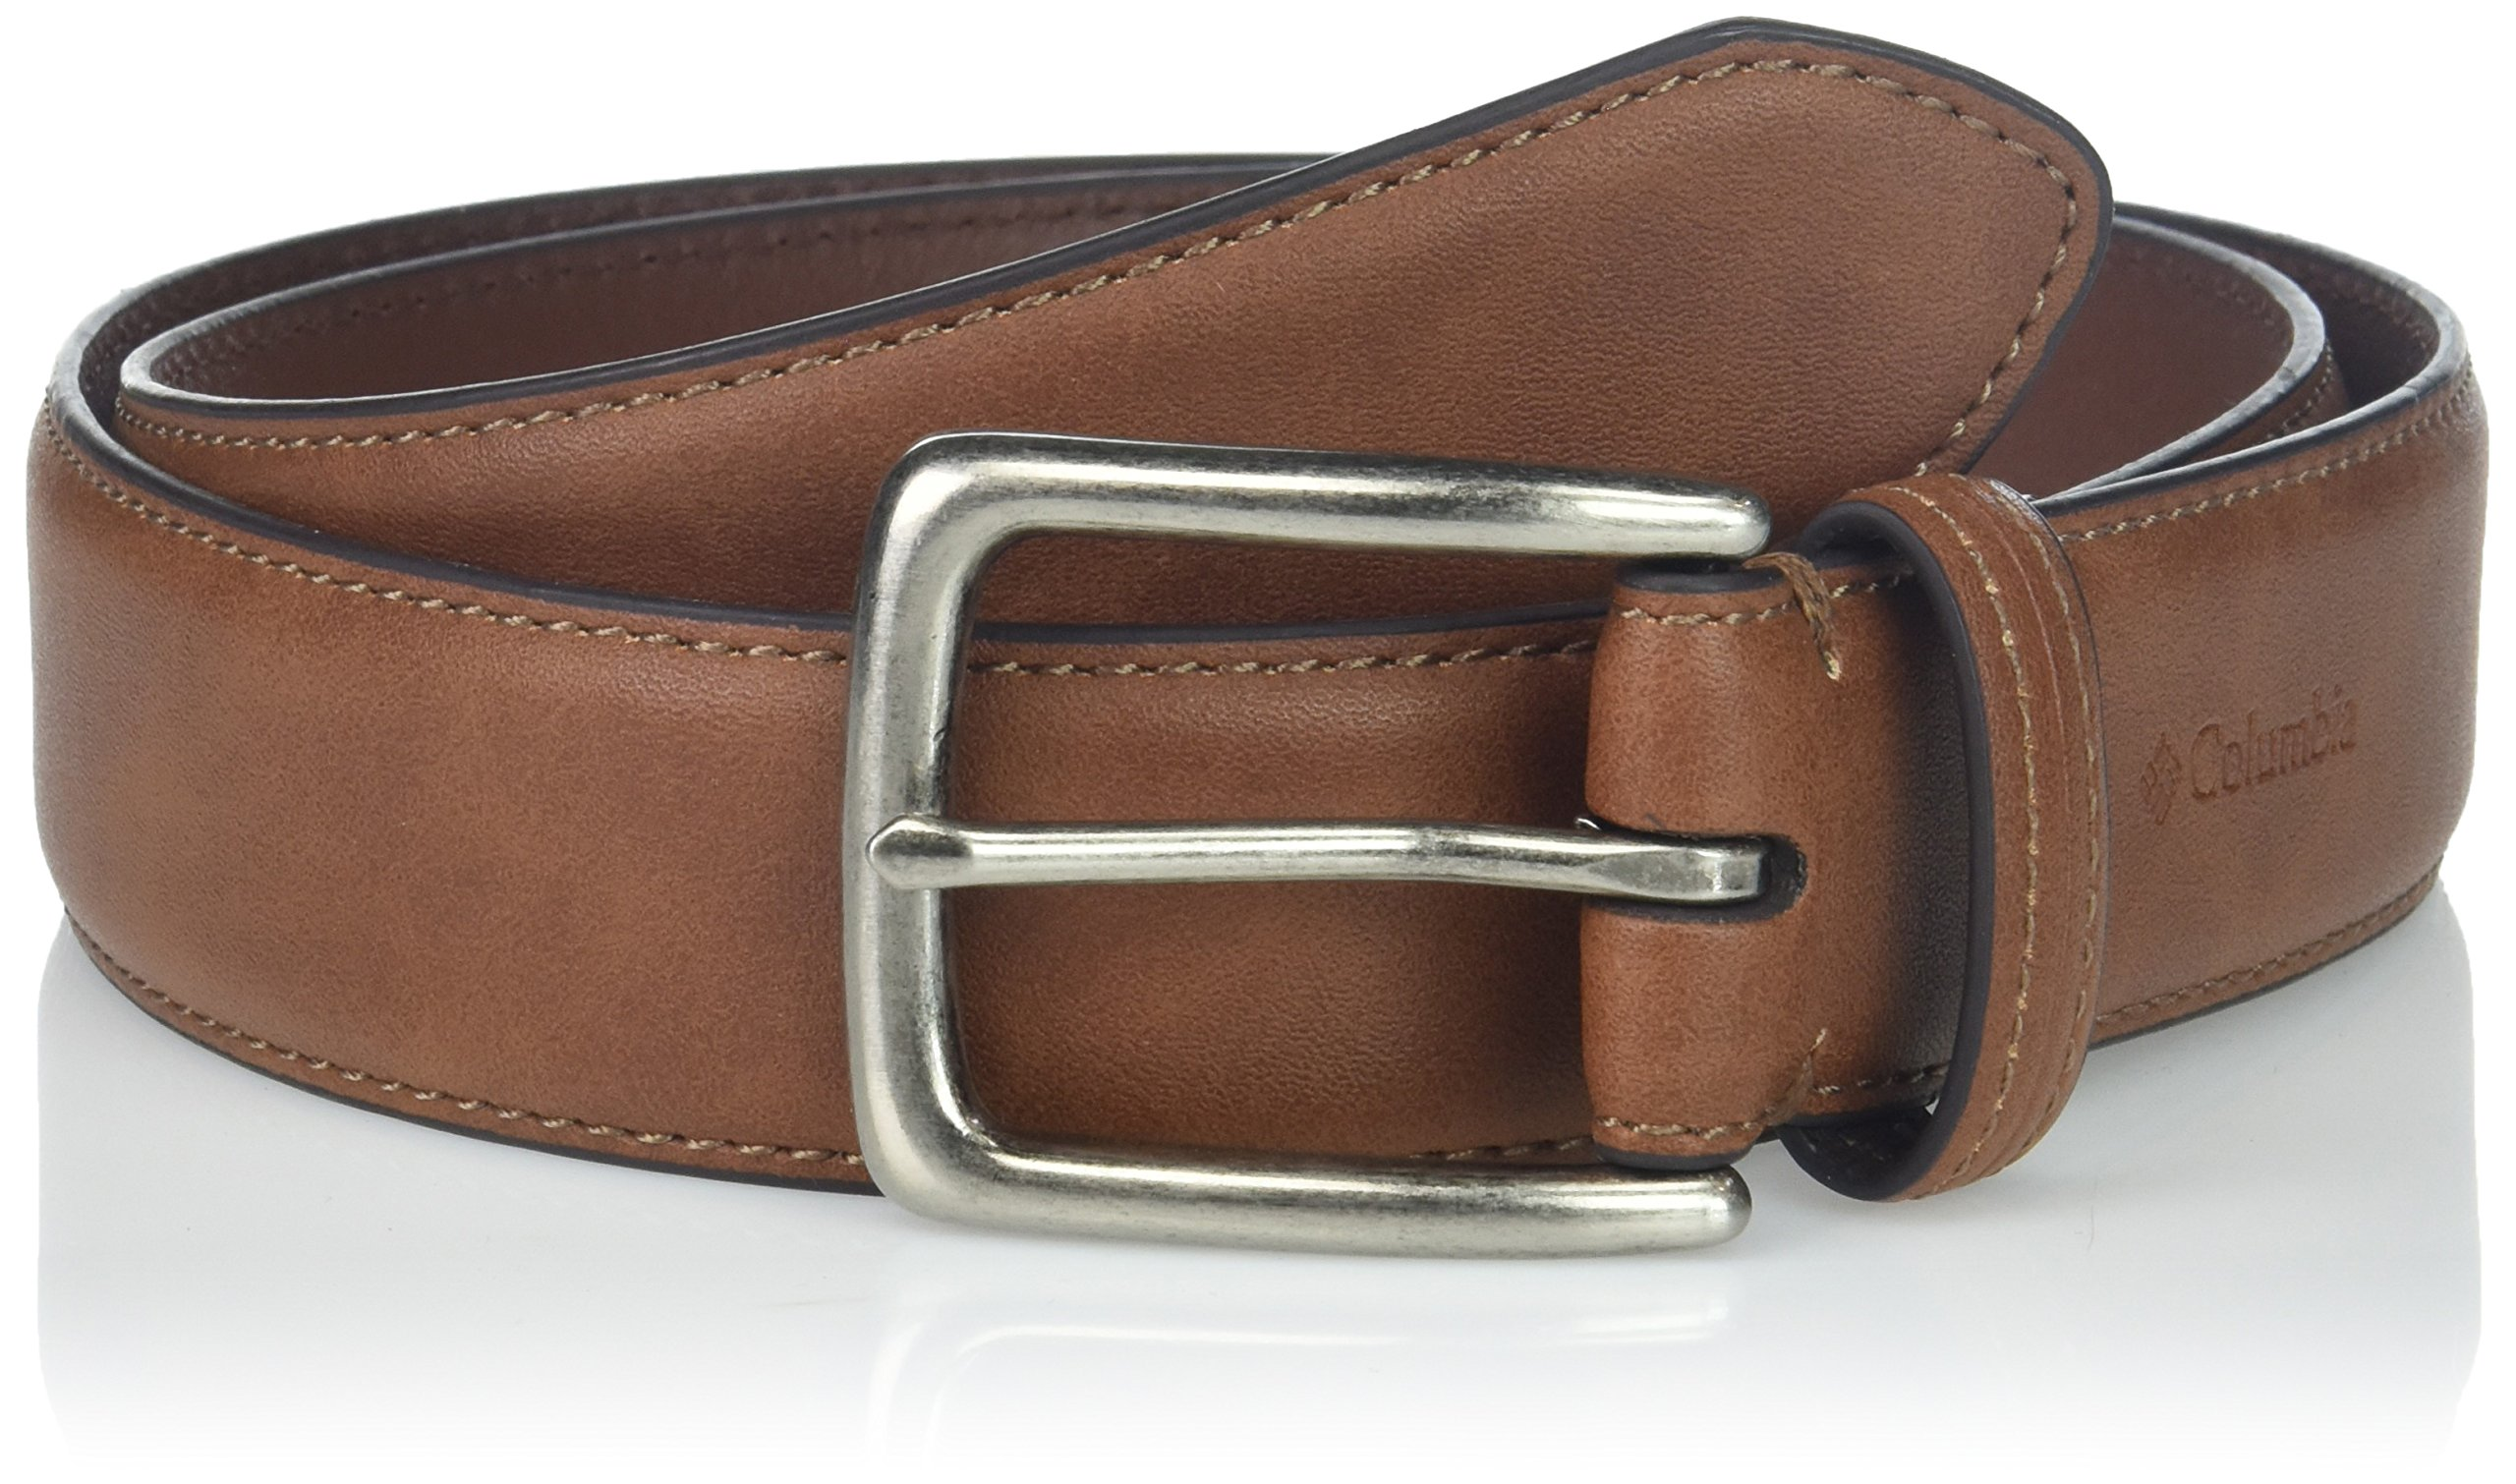 Columbia Men's Trinity 35mm Feather Edge  Belt,Tan,34